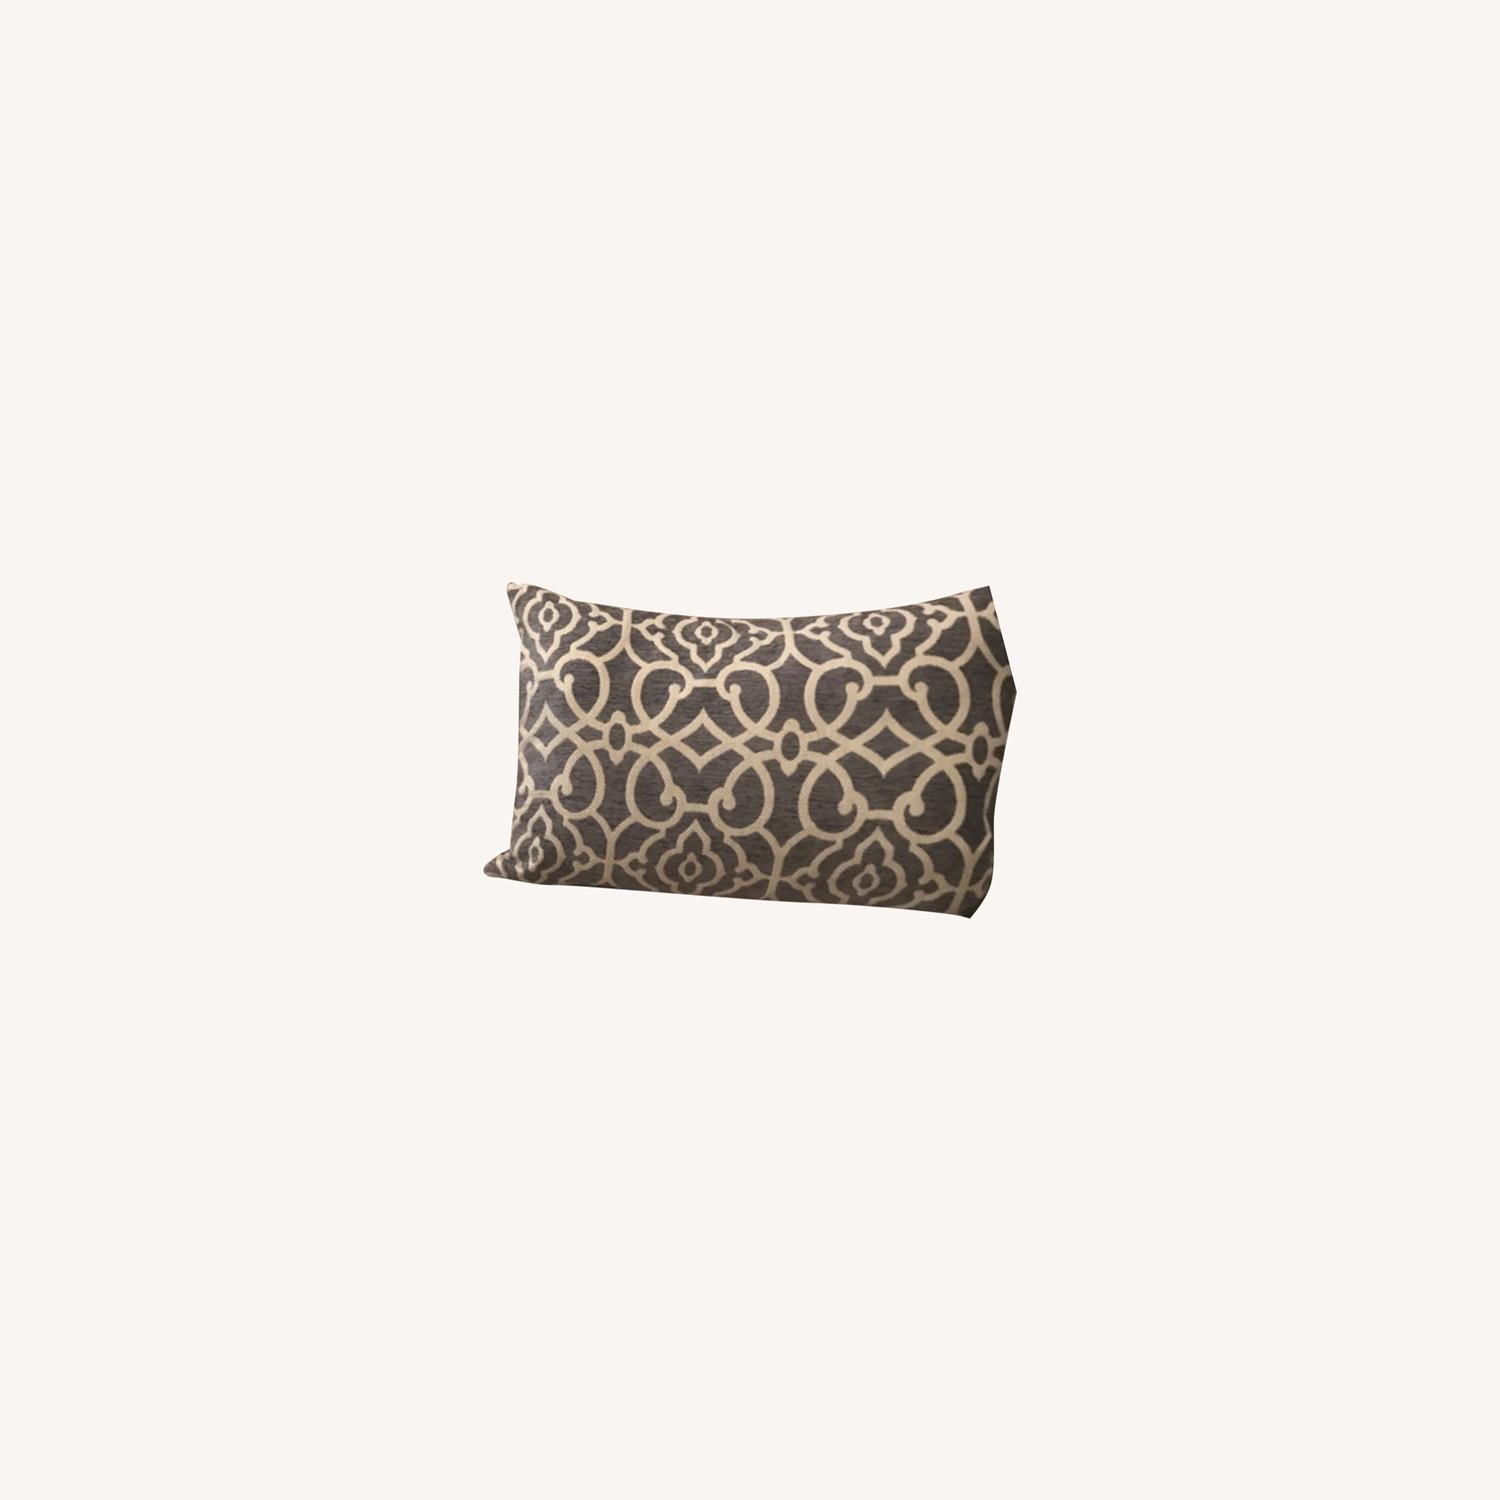 Gray & White Accent Pillows - set of 2 - image-0